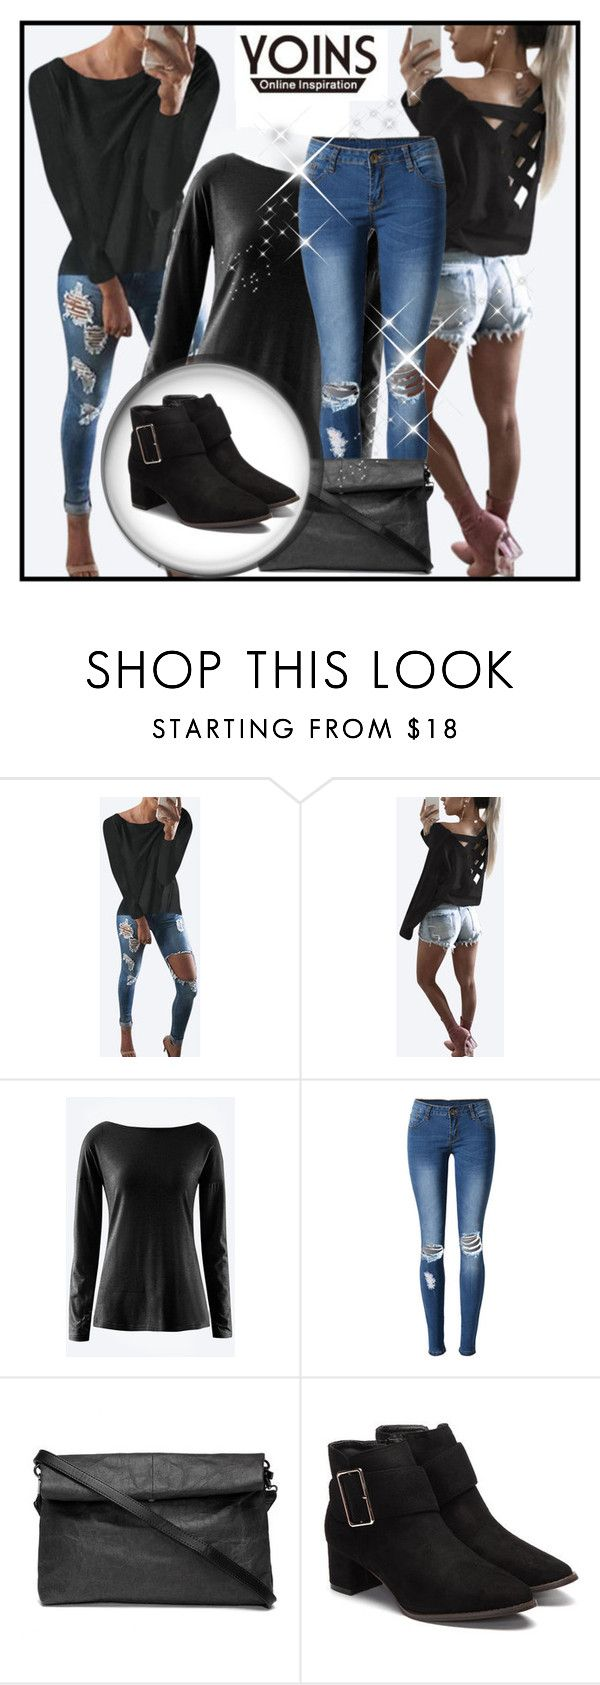 """""""Yoins 18."""" by belma-cibric ❤ liked on Polyvore featuring WithChic, yoinscollection and loveyoins"""